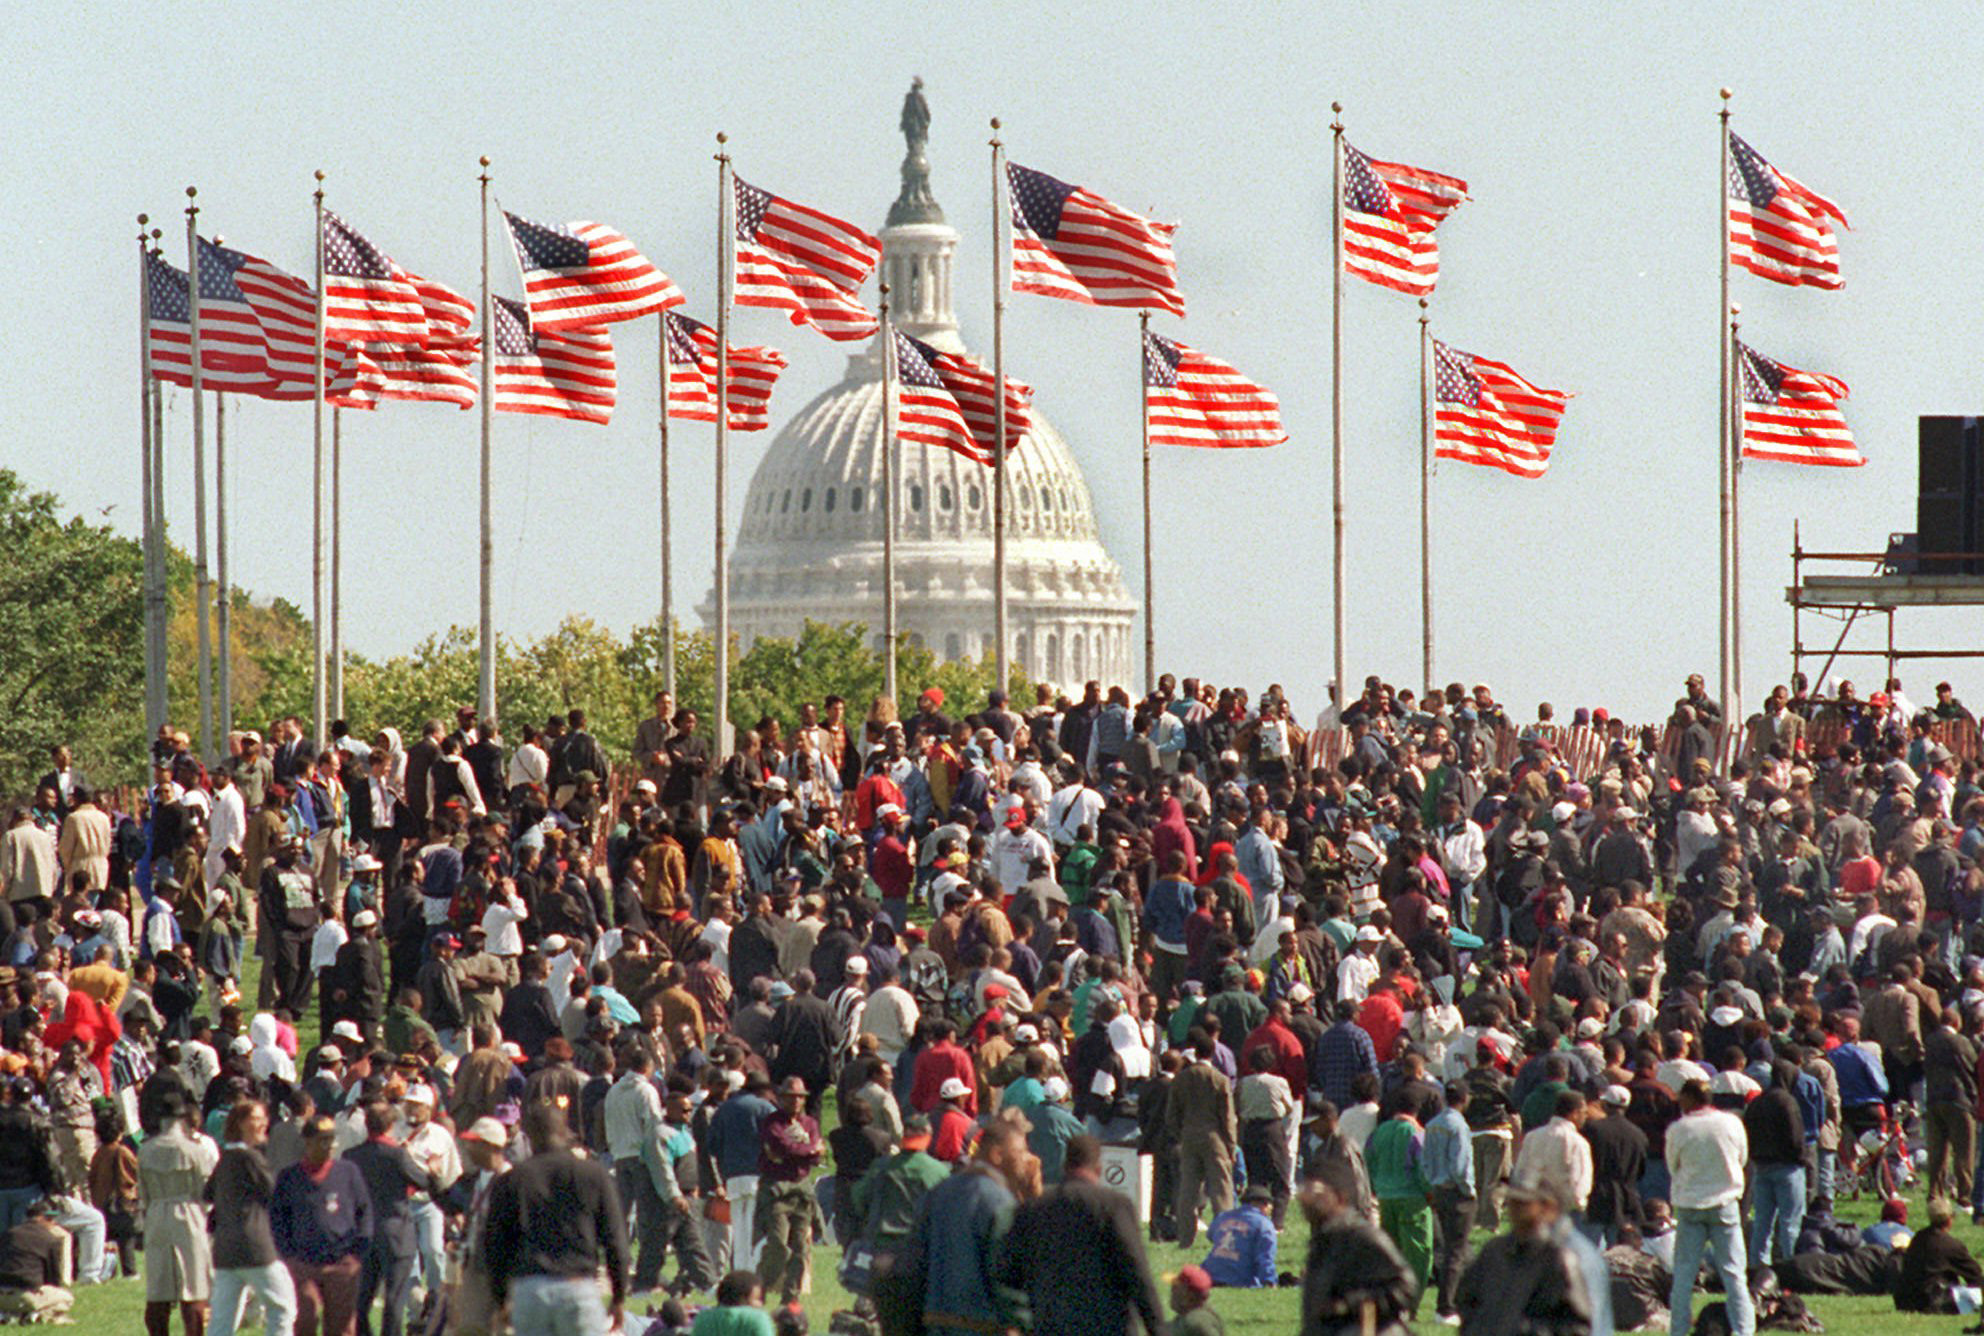 With the Capitol in the background, participants in the Million Man March gather on the Washington Monument grounds Monday Oct. 16, 1995.